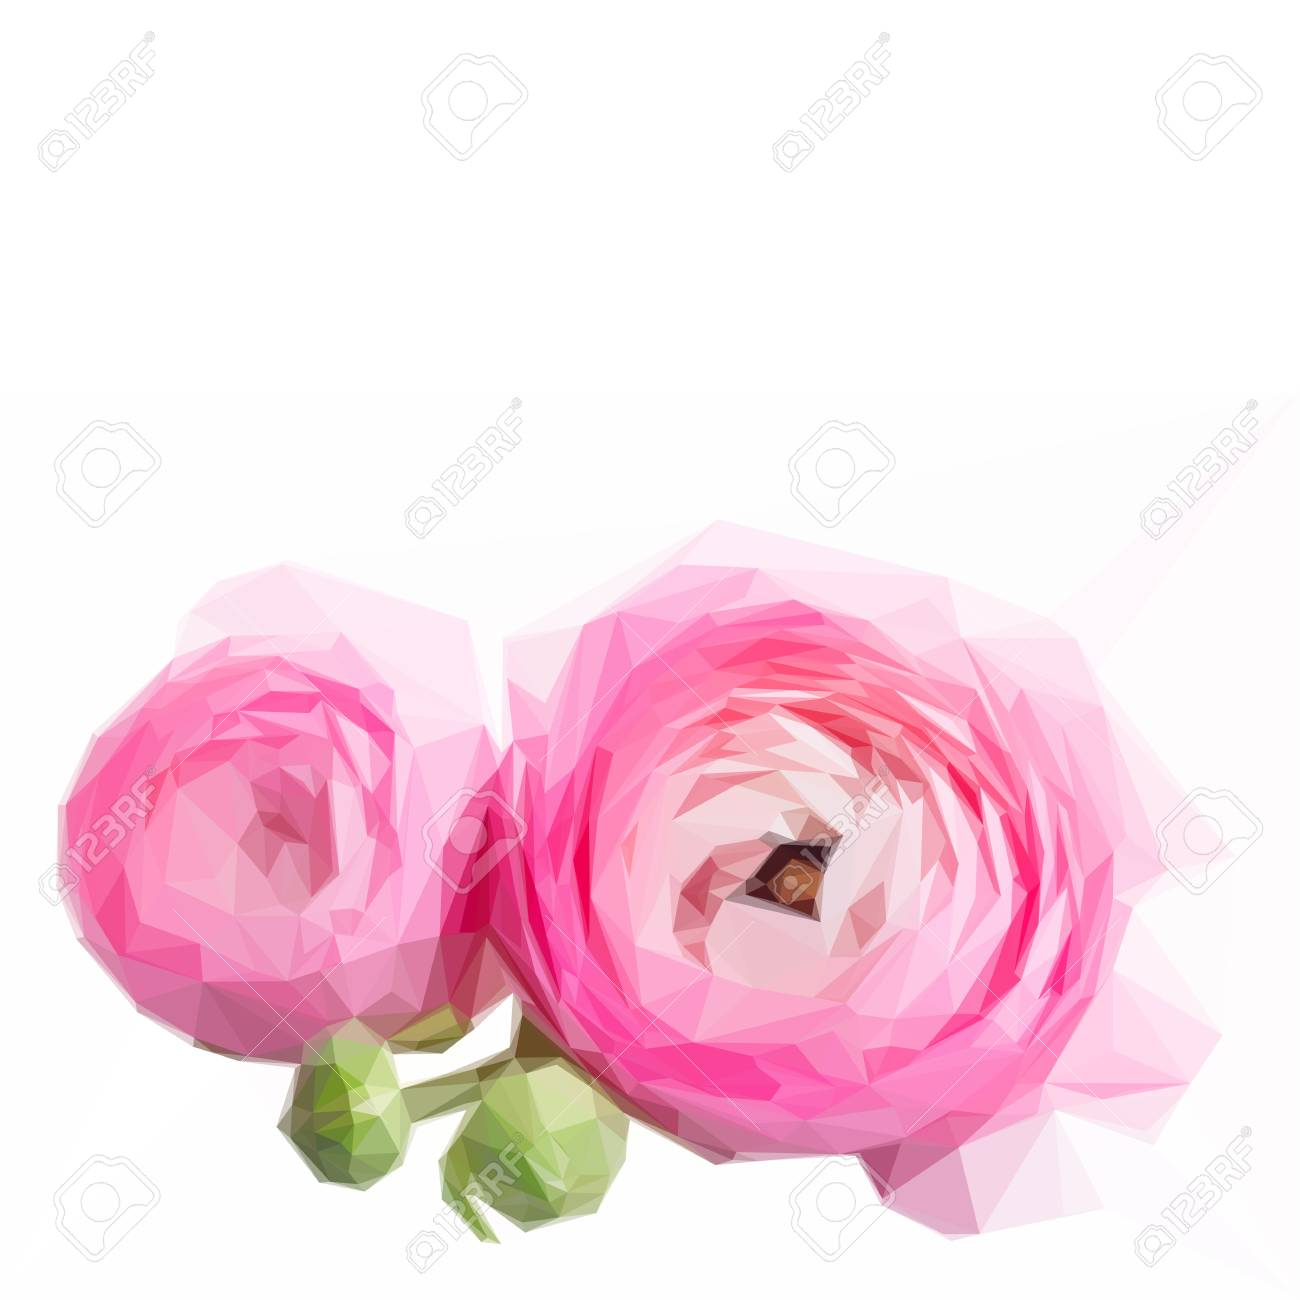 Low Poly Illustration Pink And White Ranunculus Flower Buds Isolated